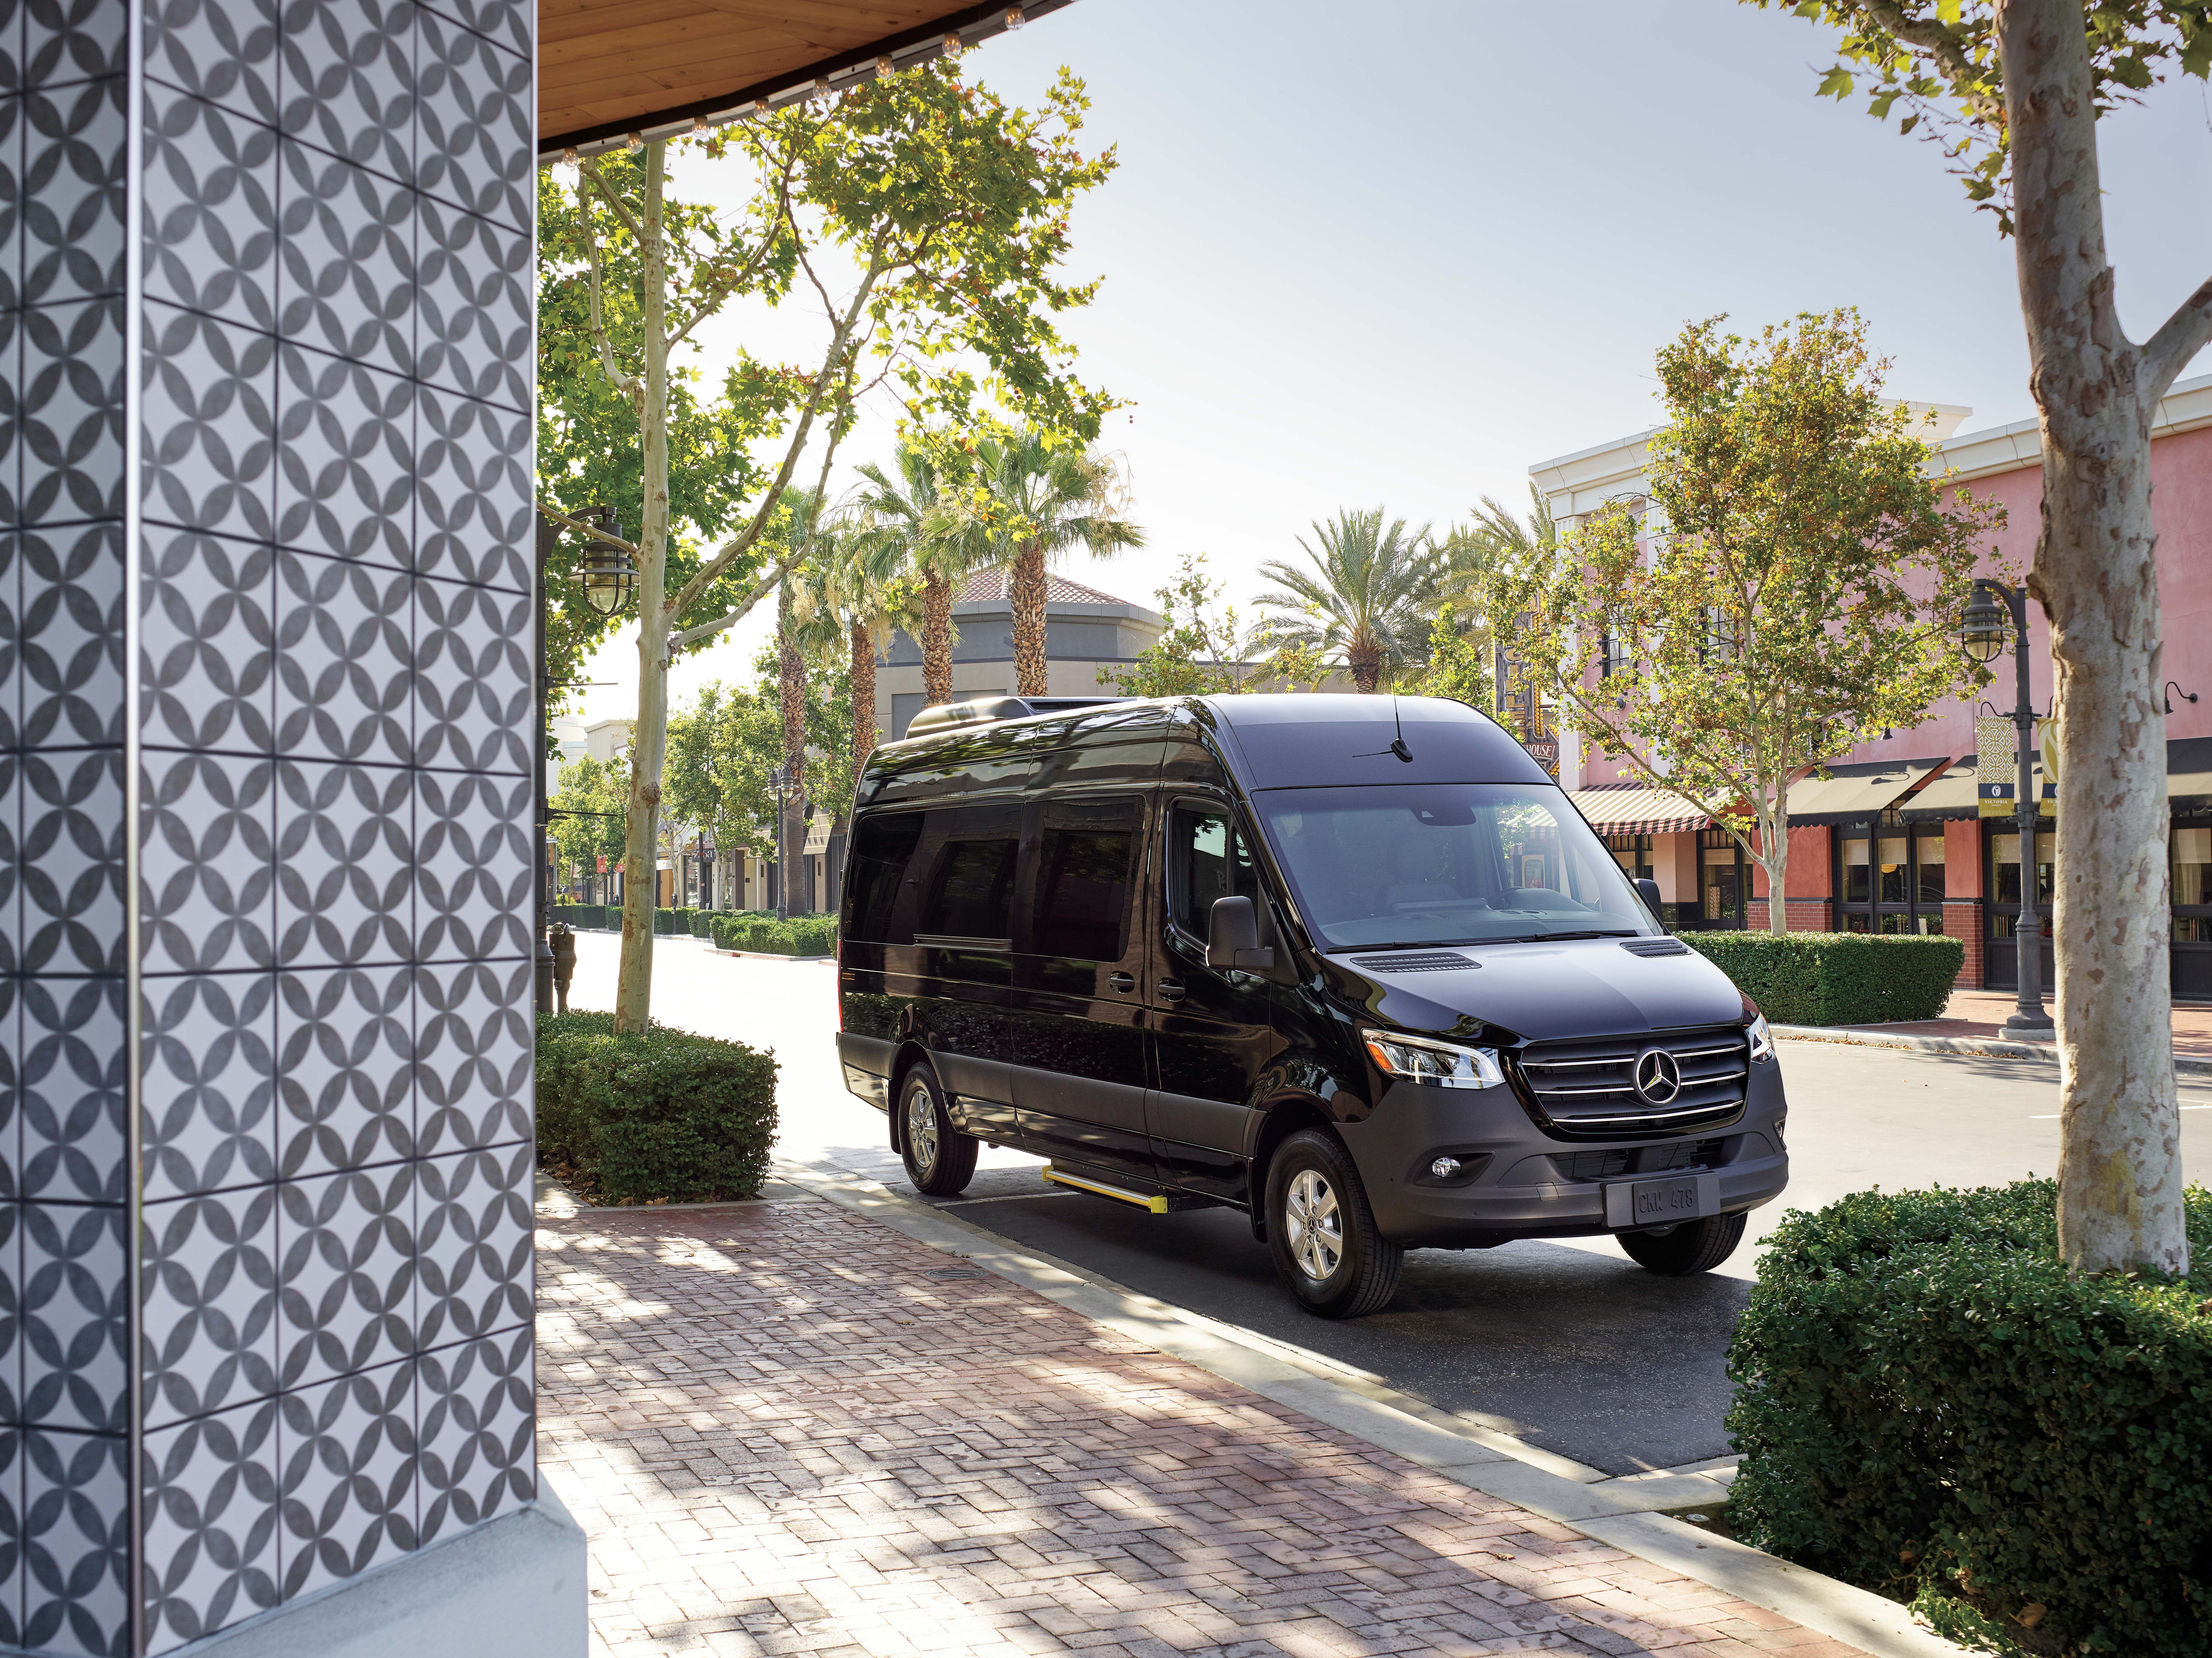 2020 Mercedes Benz Sprinter Review Pricing And Specs